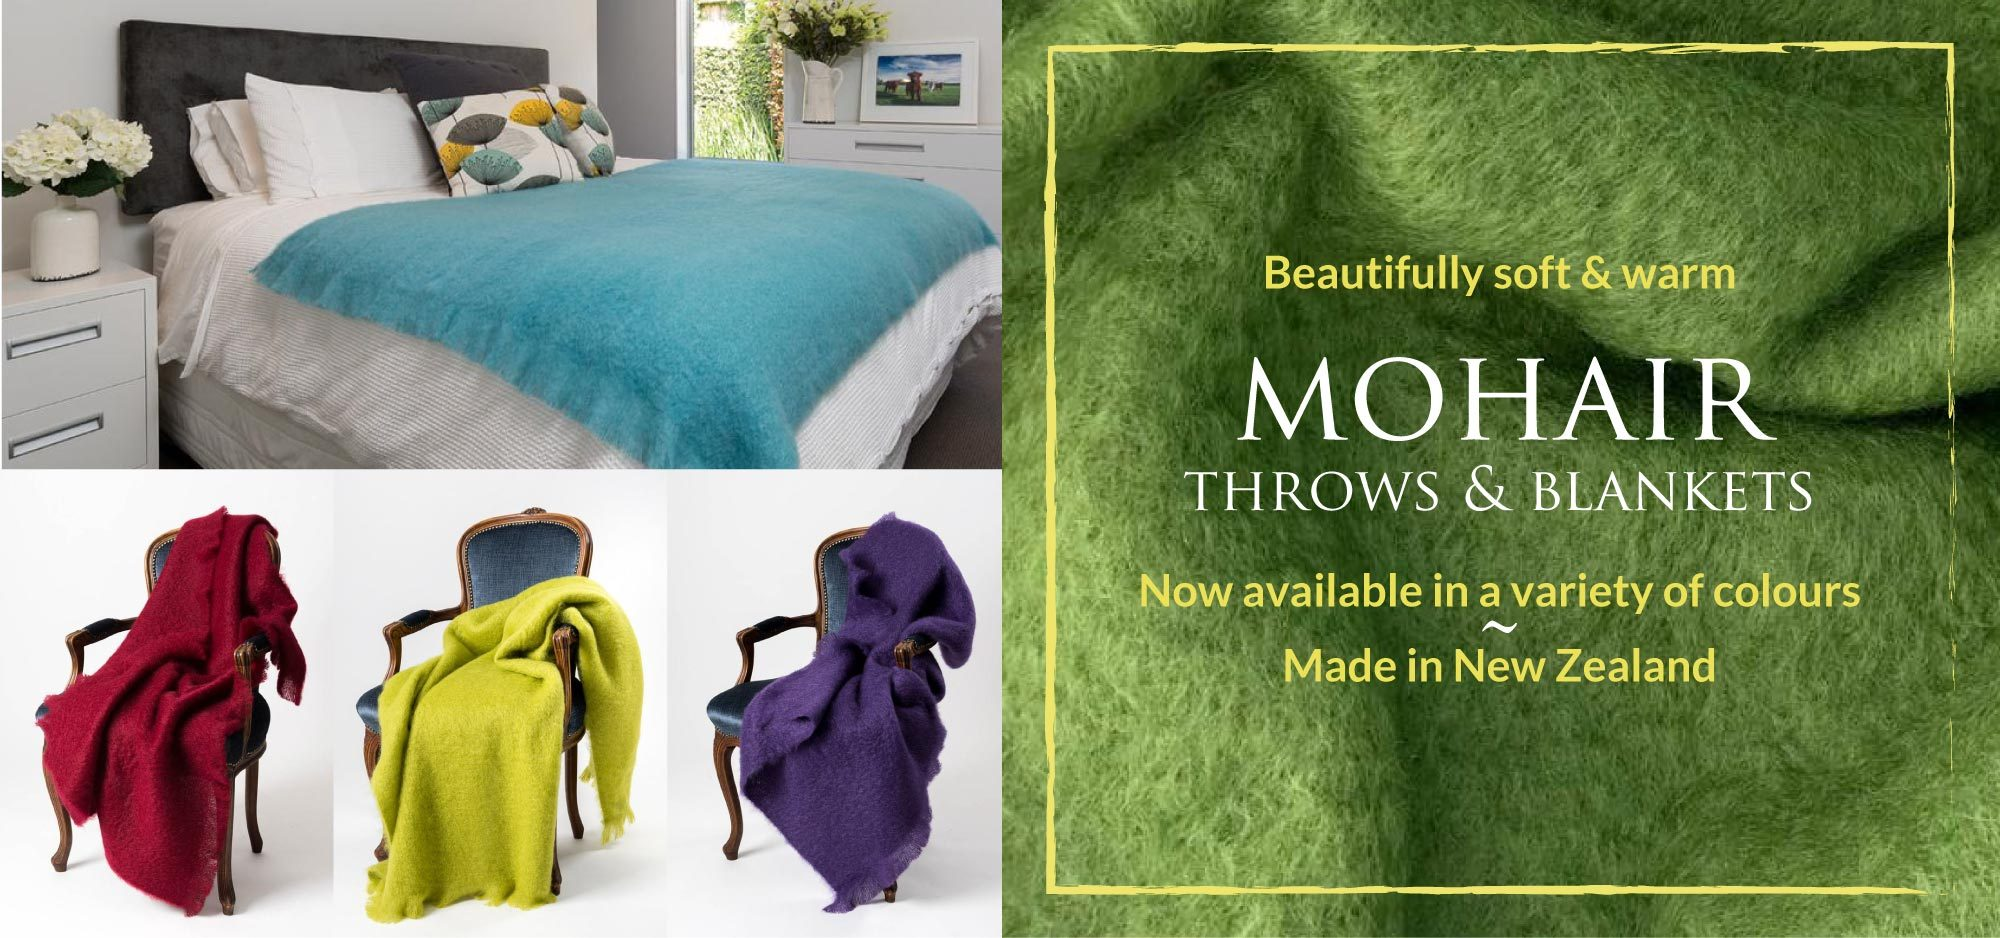 Mohair Throw Blankets in Bright Colours